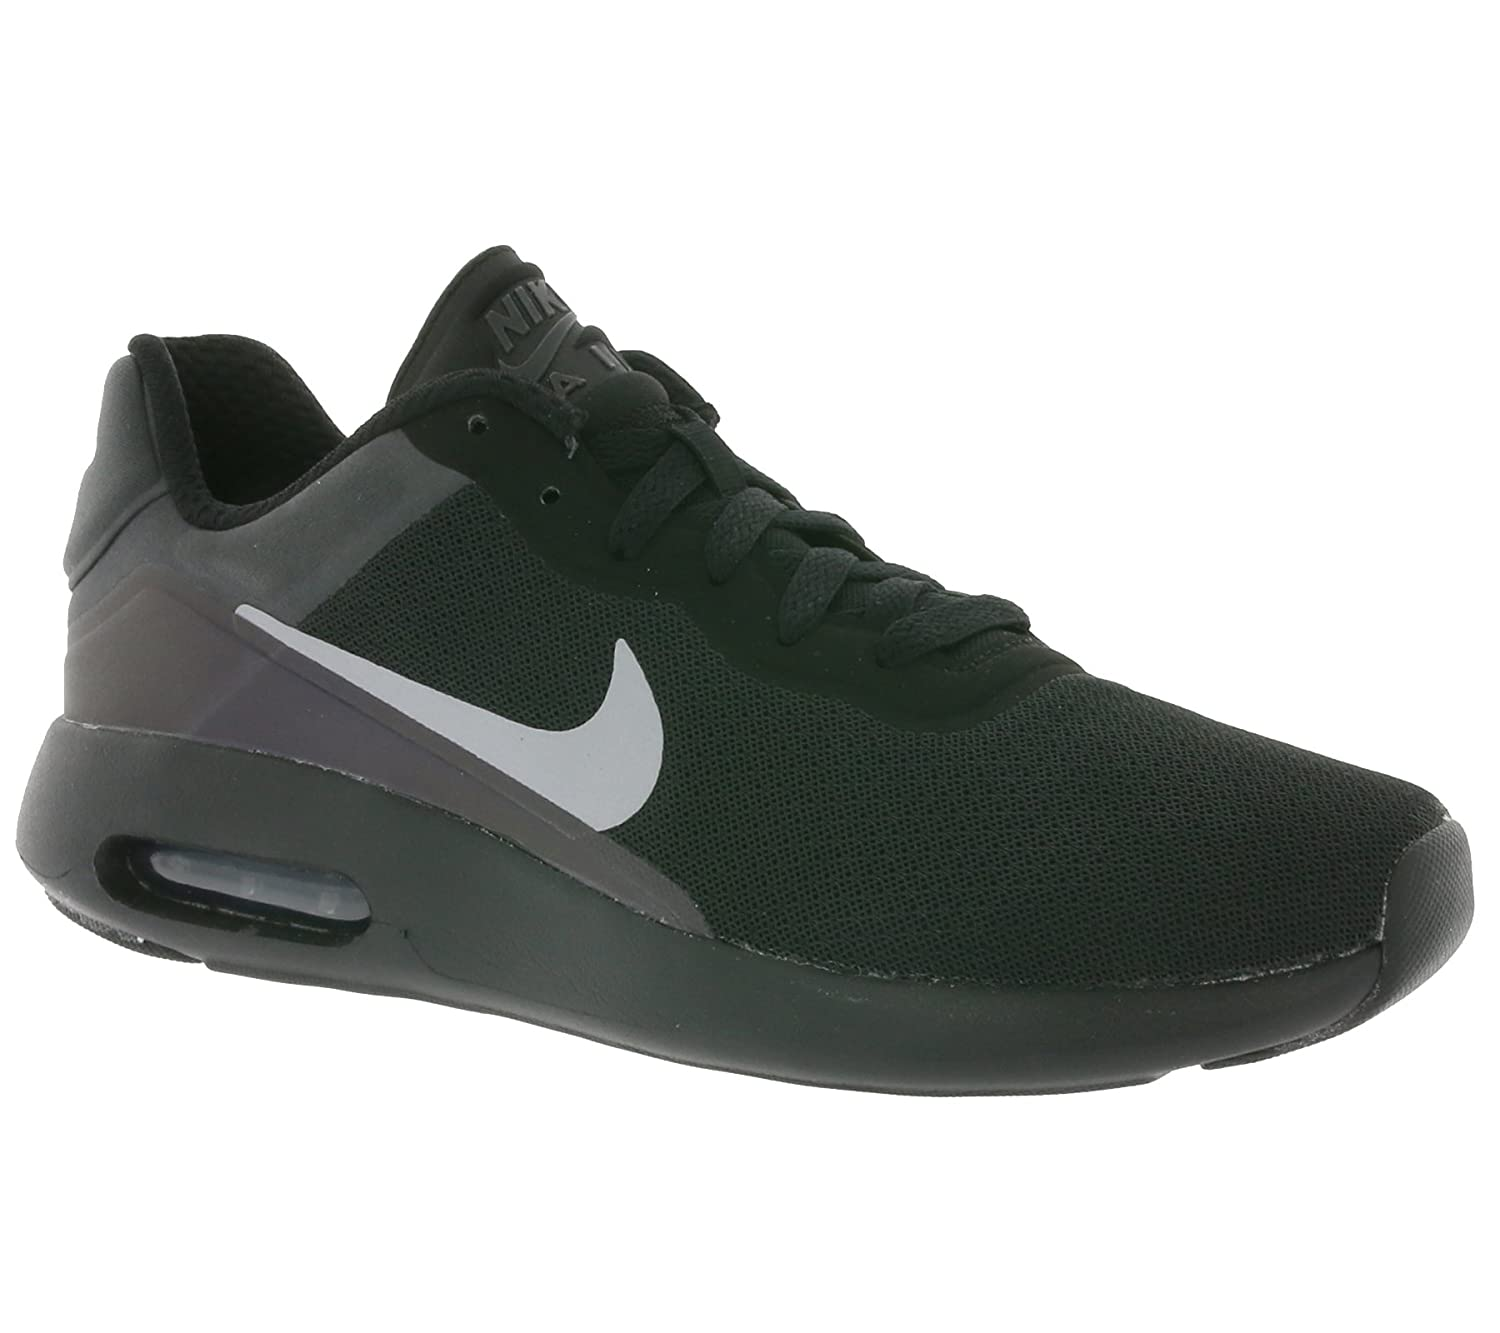 NIKE Mens Air Max Modern SE Round Toe Lace-up Running Shoes B01L39GBPE 8 D(M) US|Black/Pure Platinum-anthracite